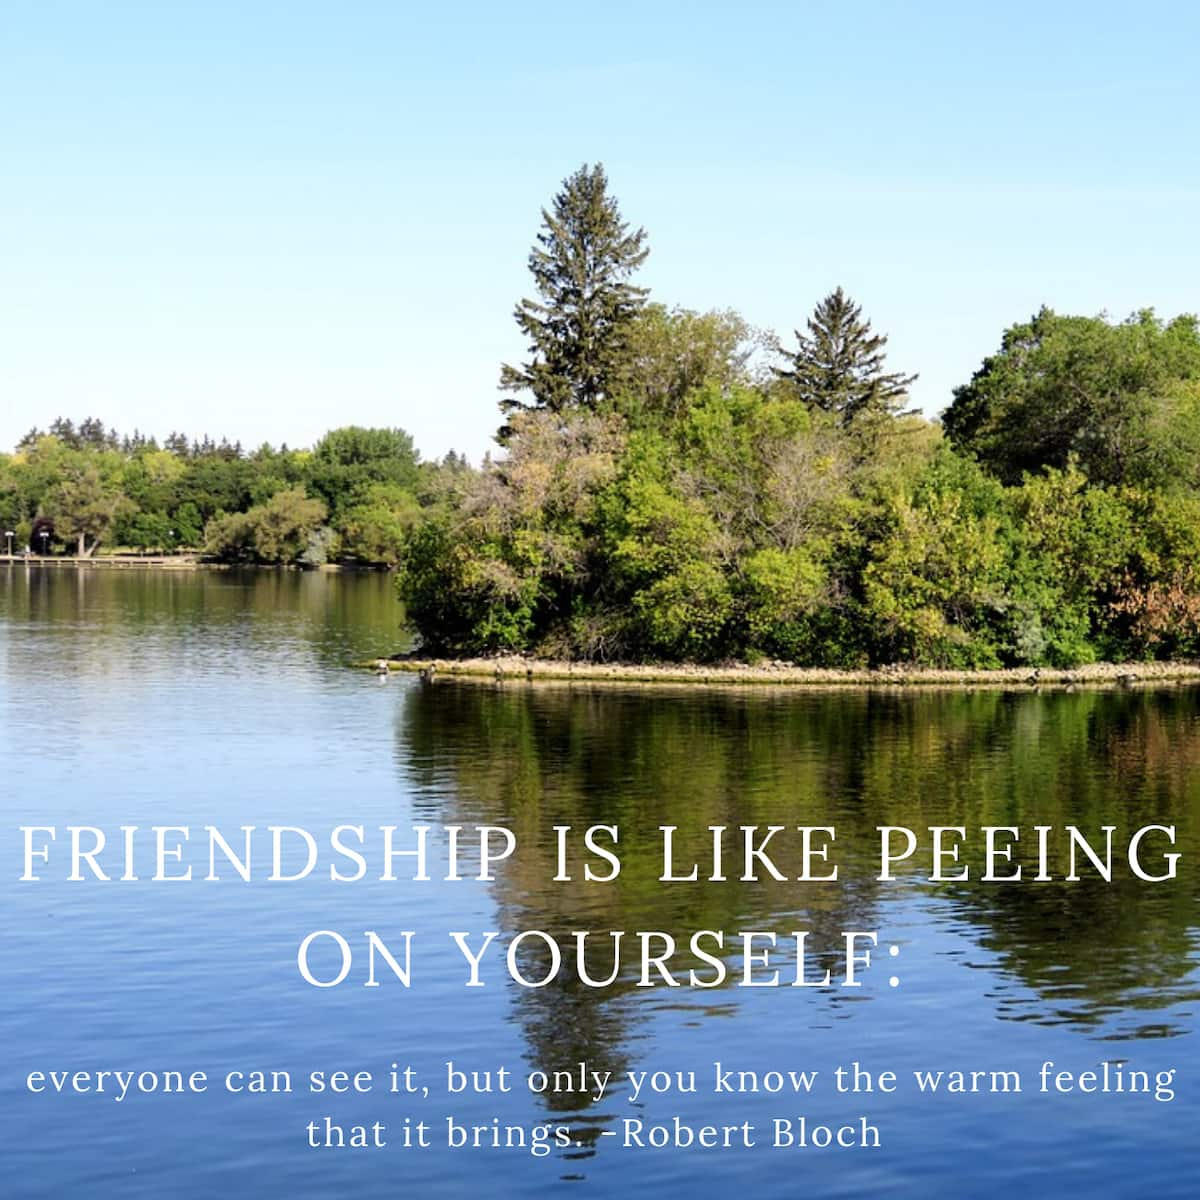 crazy quotes, crazy life quotes, funny stupid quotes